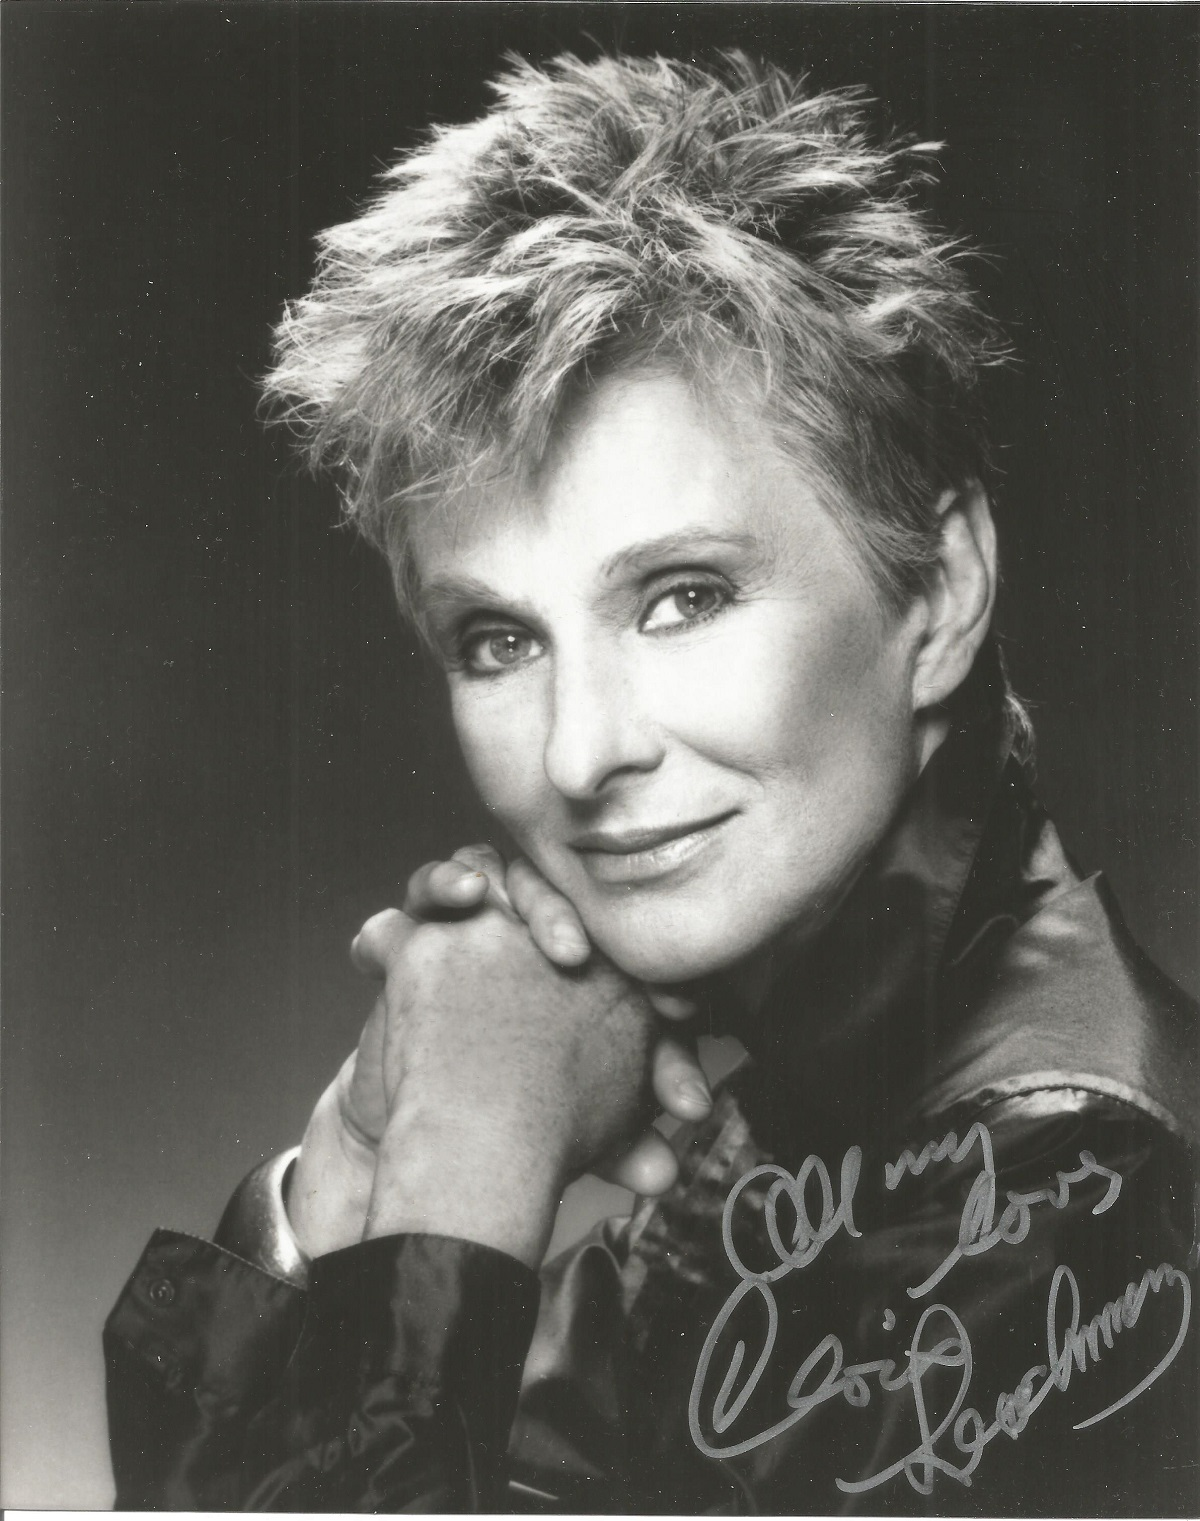 Cloris Leachman signed 10x8 black and white photo. Good Condition. All autographs are genuine hand